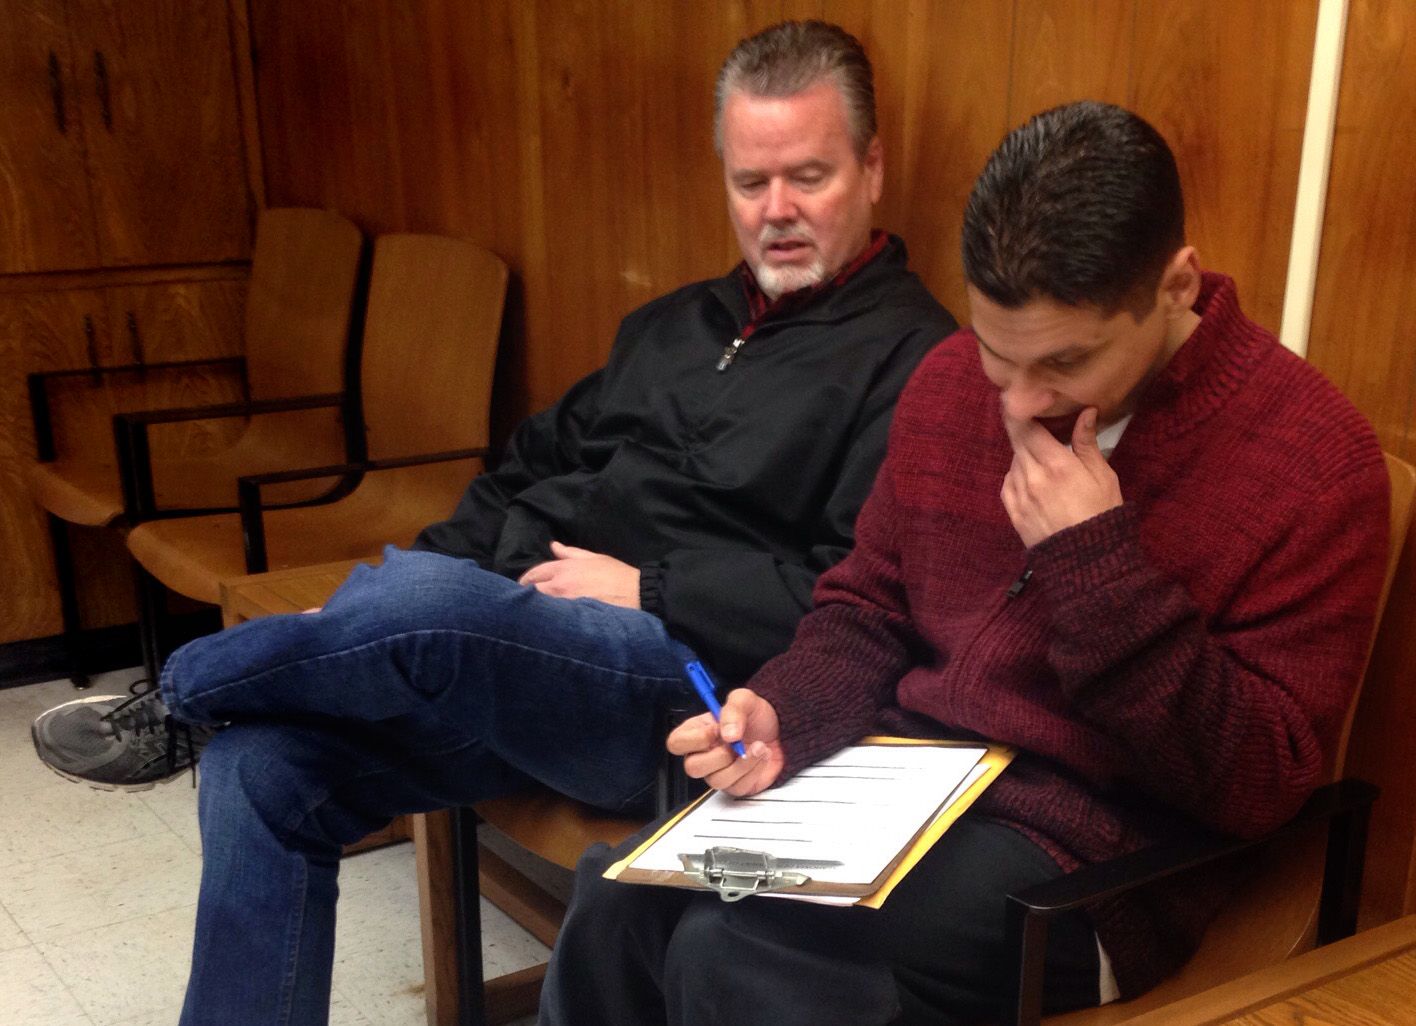 Guerrero's former mentor Danny Hurst accompanies him to the courthouse the  day he is released from